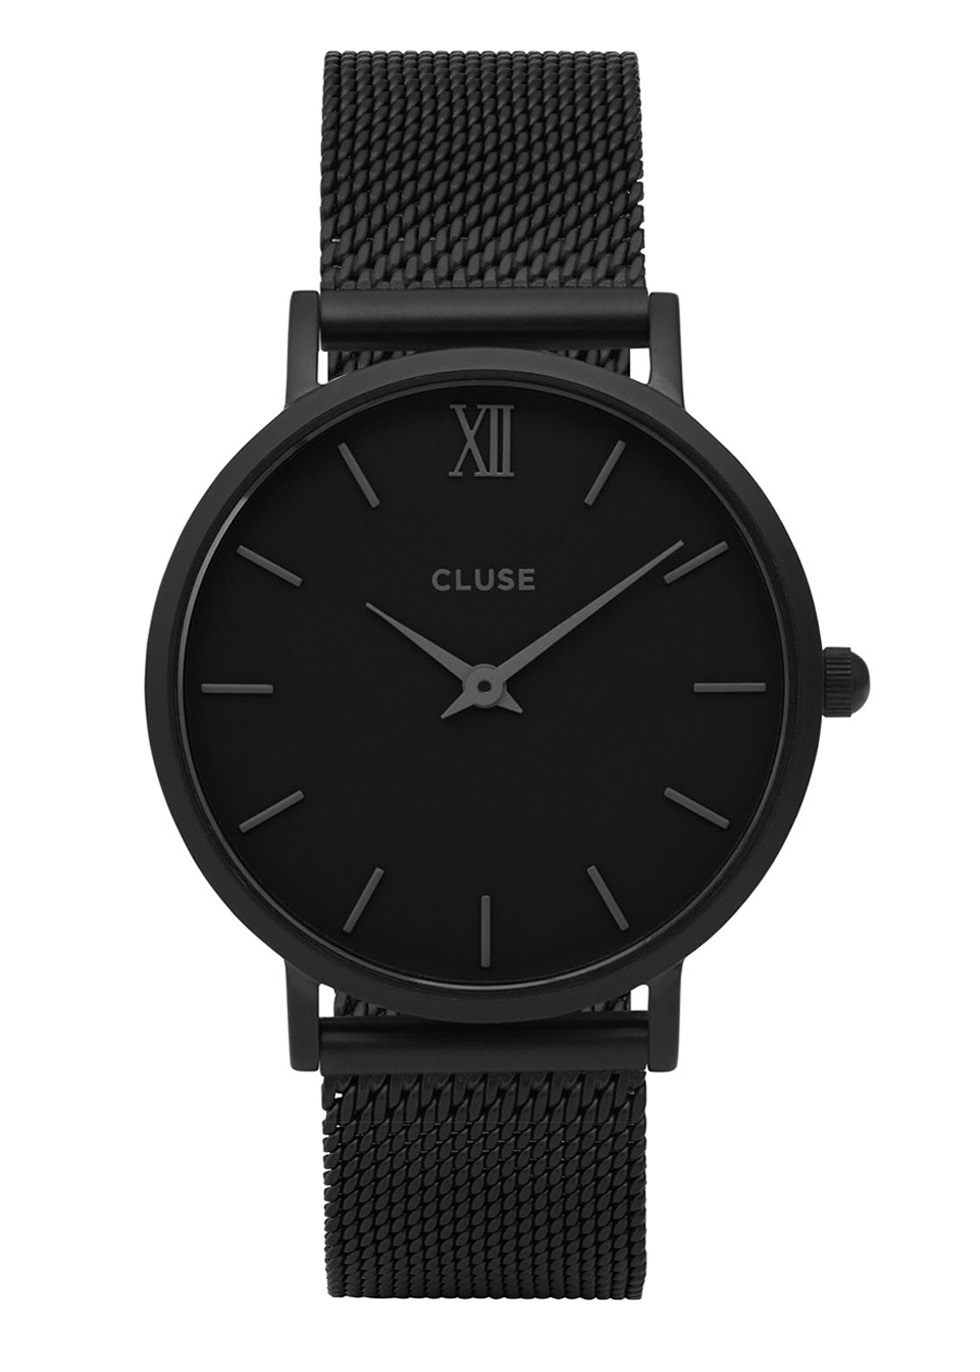 Minuit black stainless steel watch - CLUSE